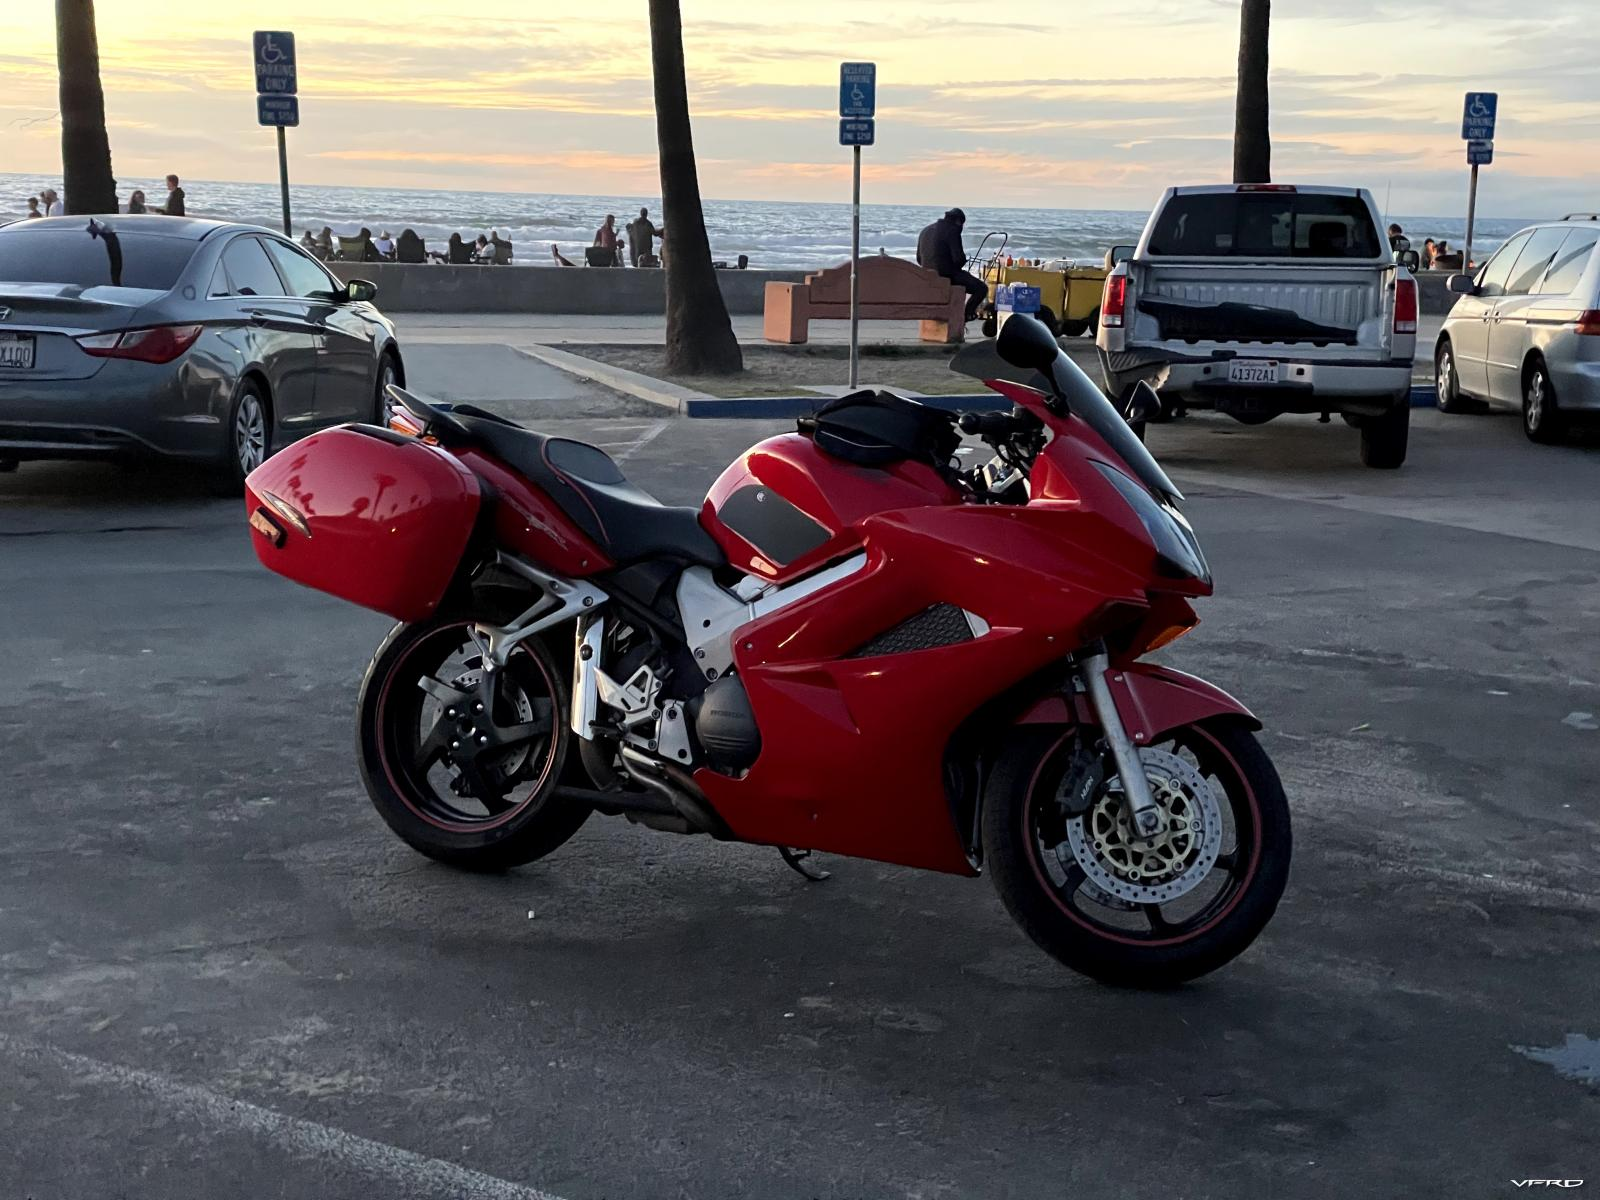 VFR at the beach